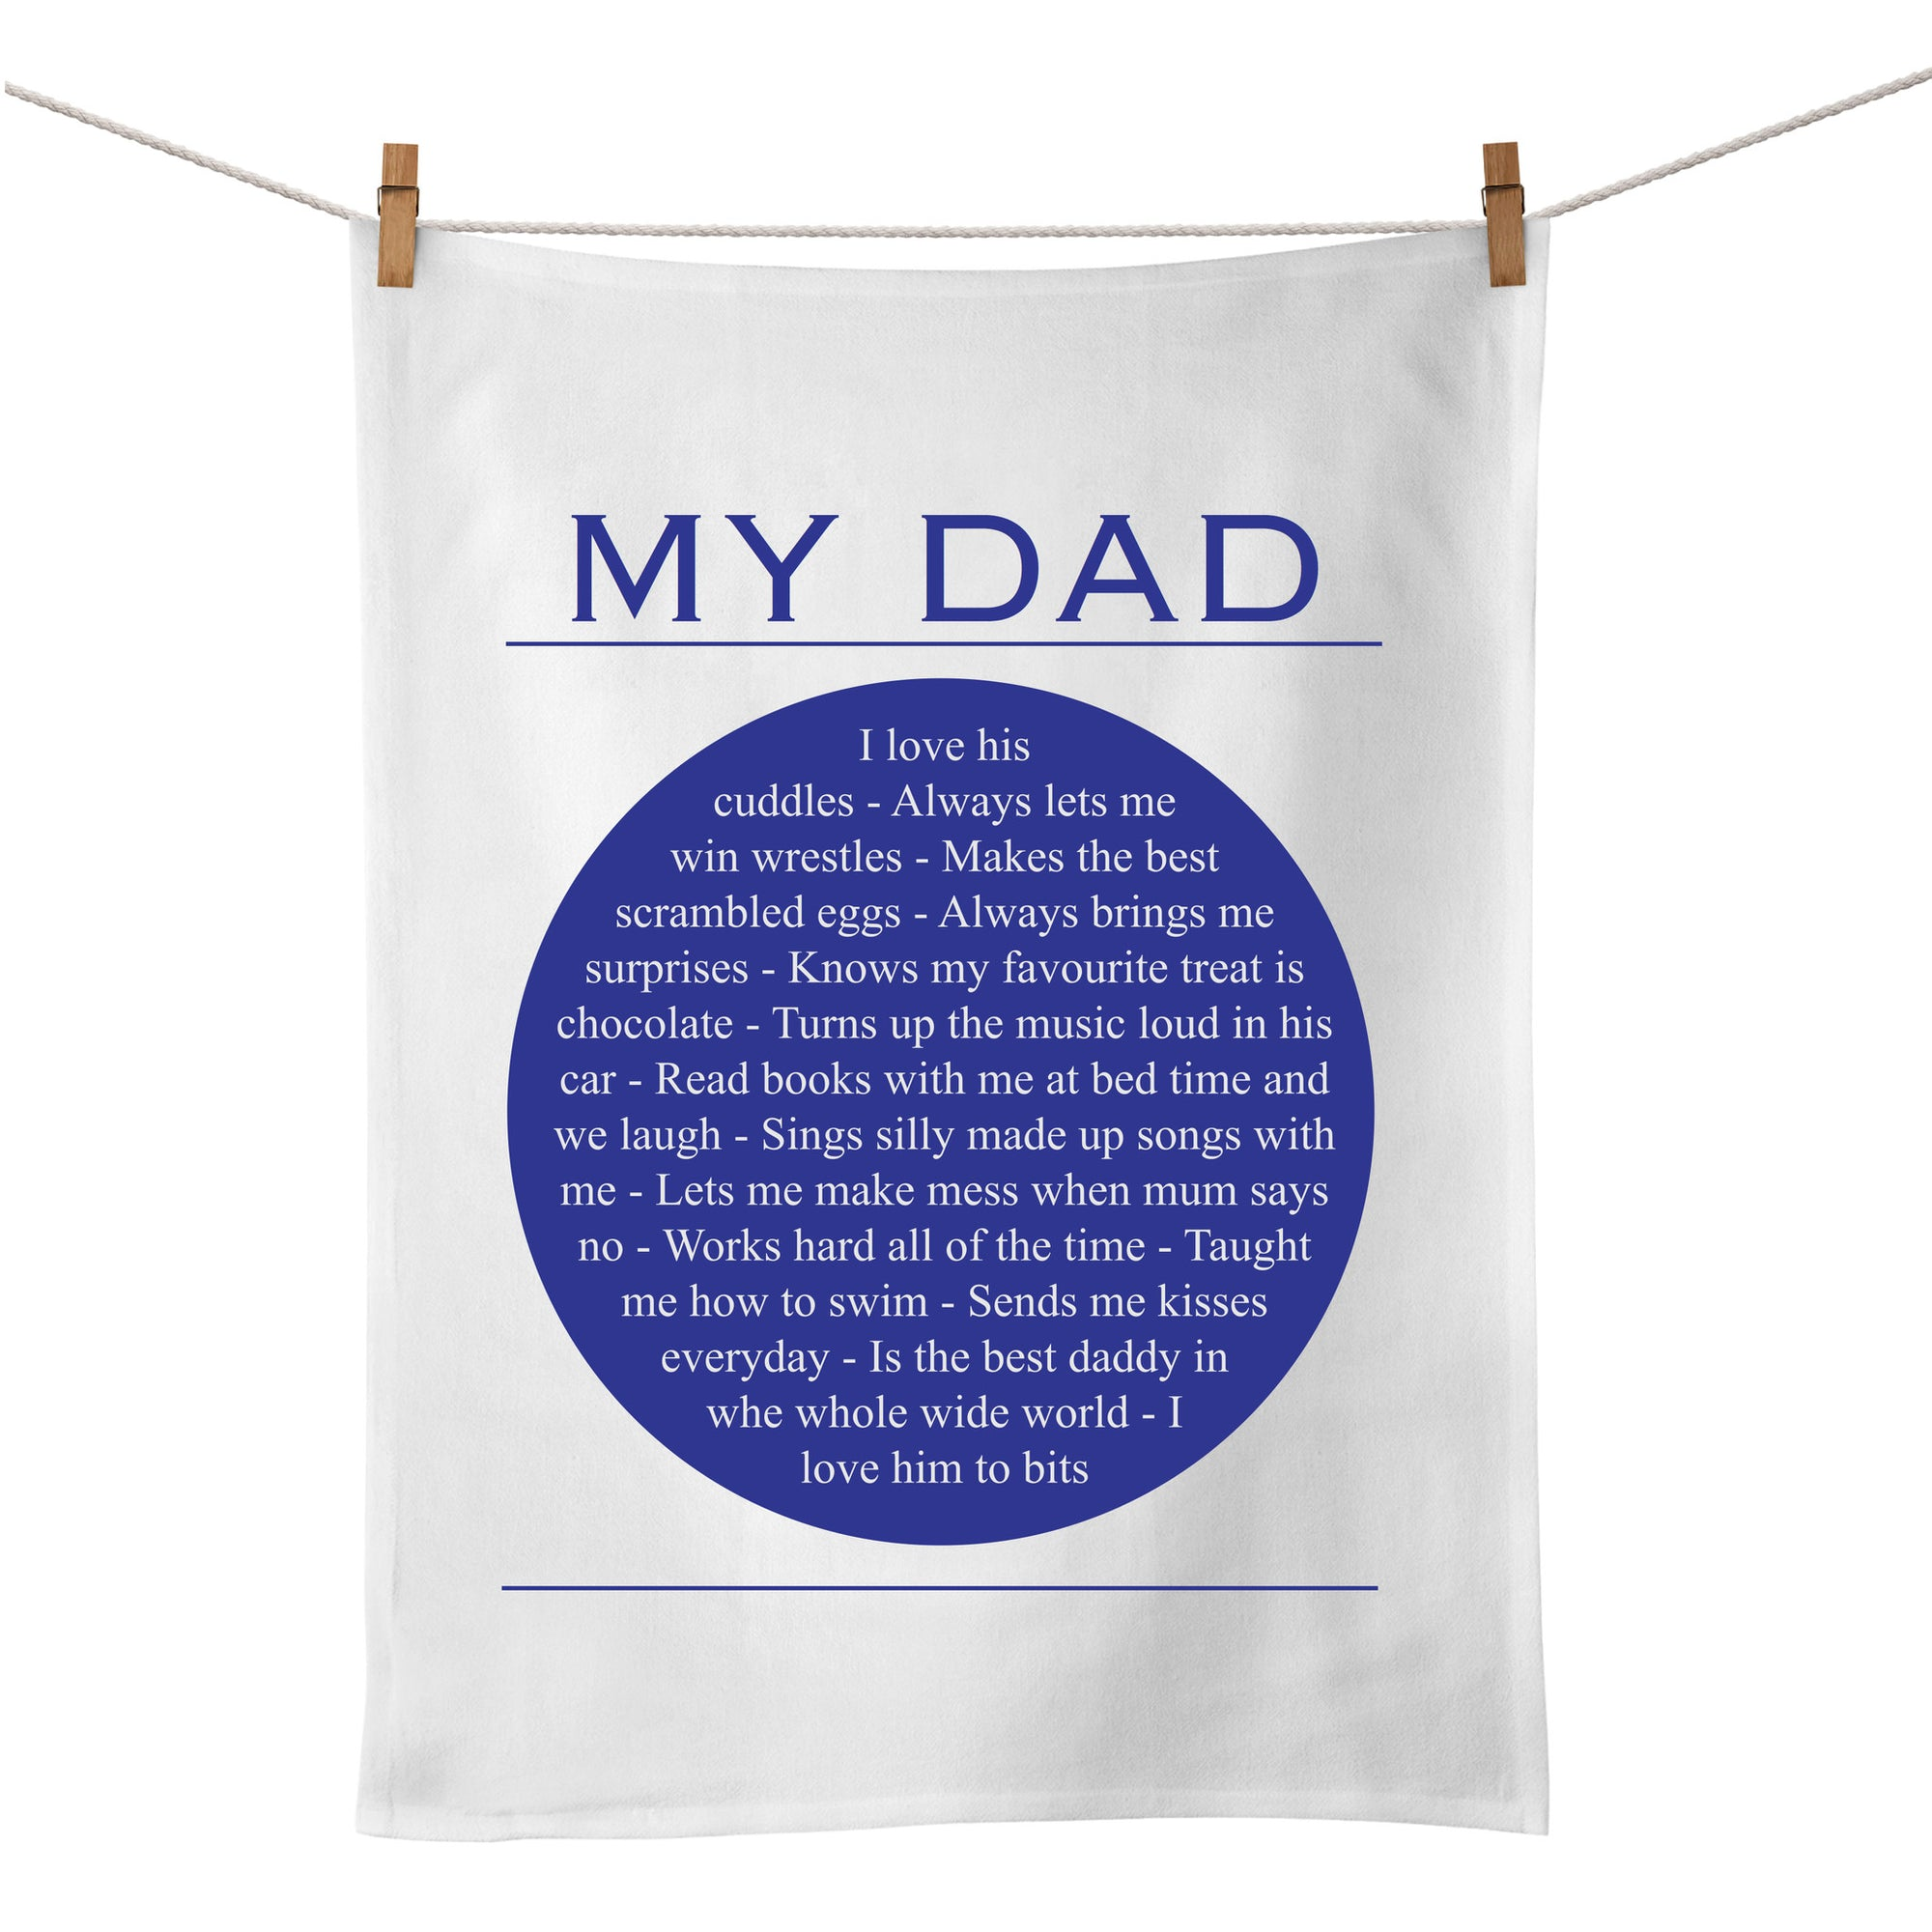 My Dad Tea Towel